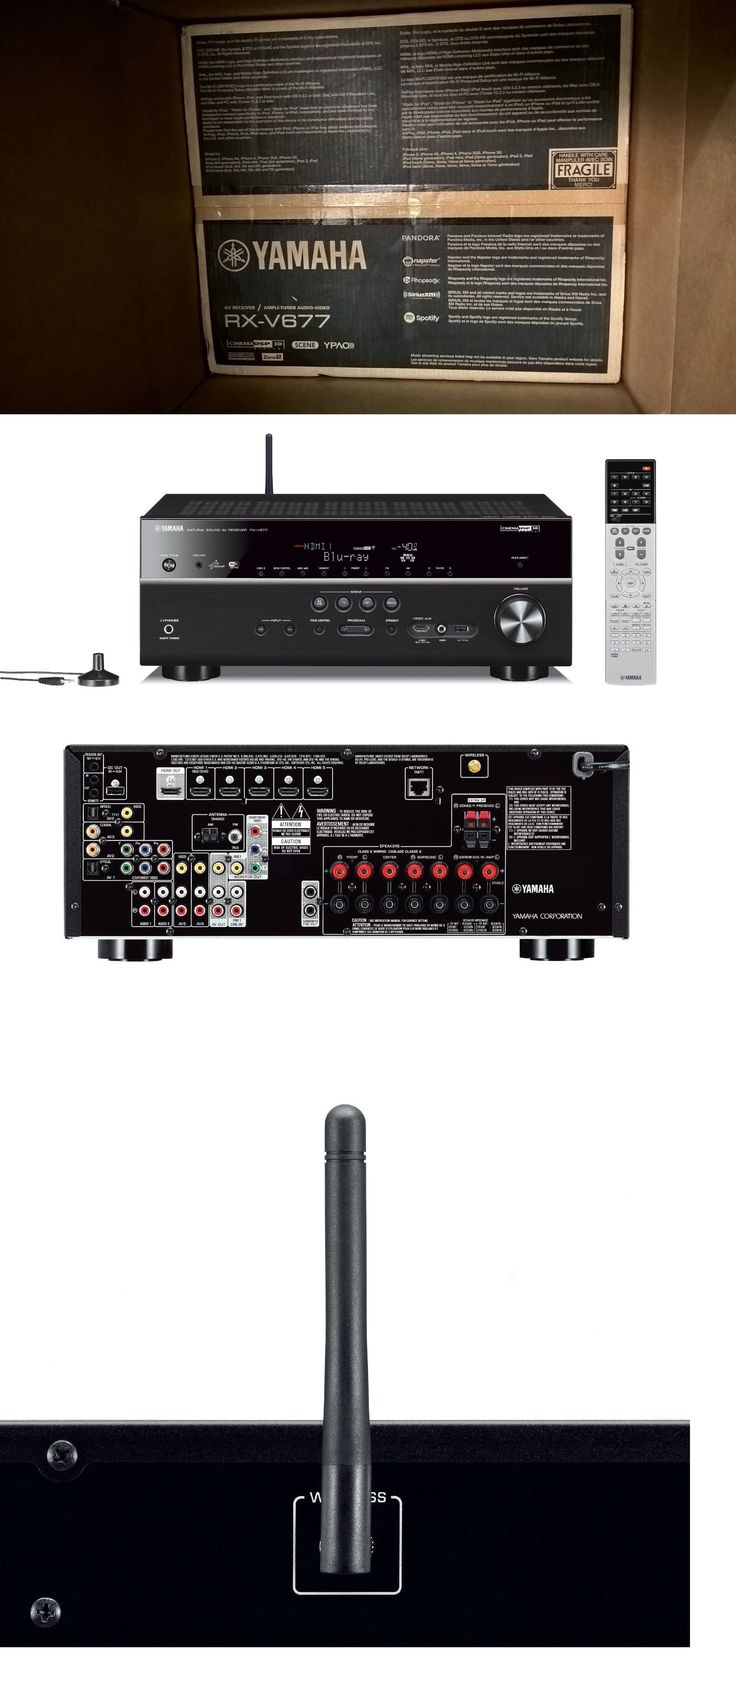 Home Theater Receivers: New! Yamaha Rx-V677 7.2-Channel Audio/Video Home Theater Receiver Built-In Wi-Fi -> BUY IT NOW ONLY: $469.95 on eBay!